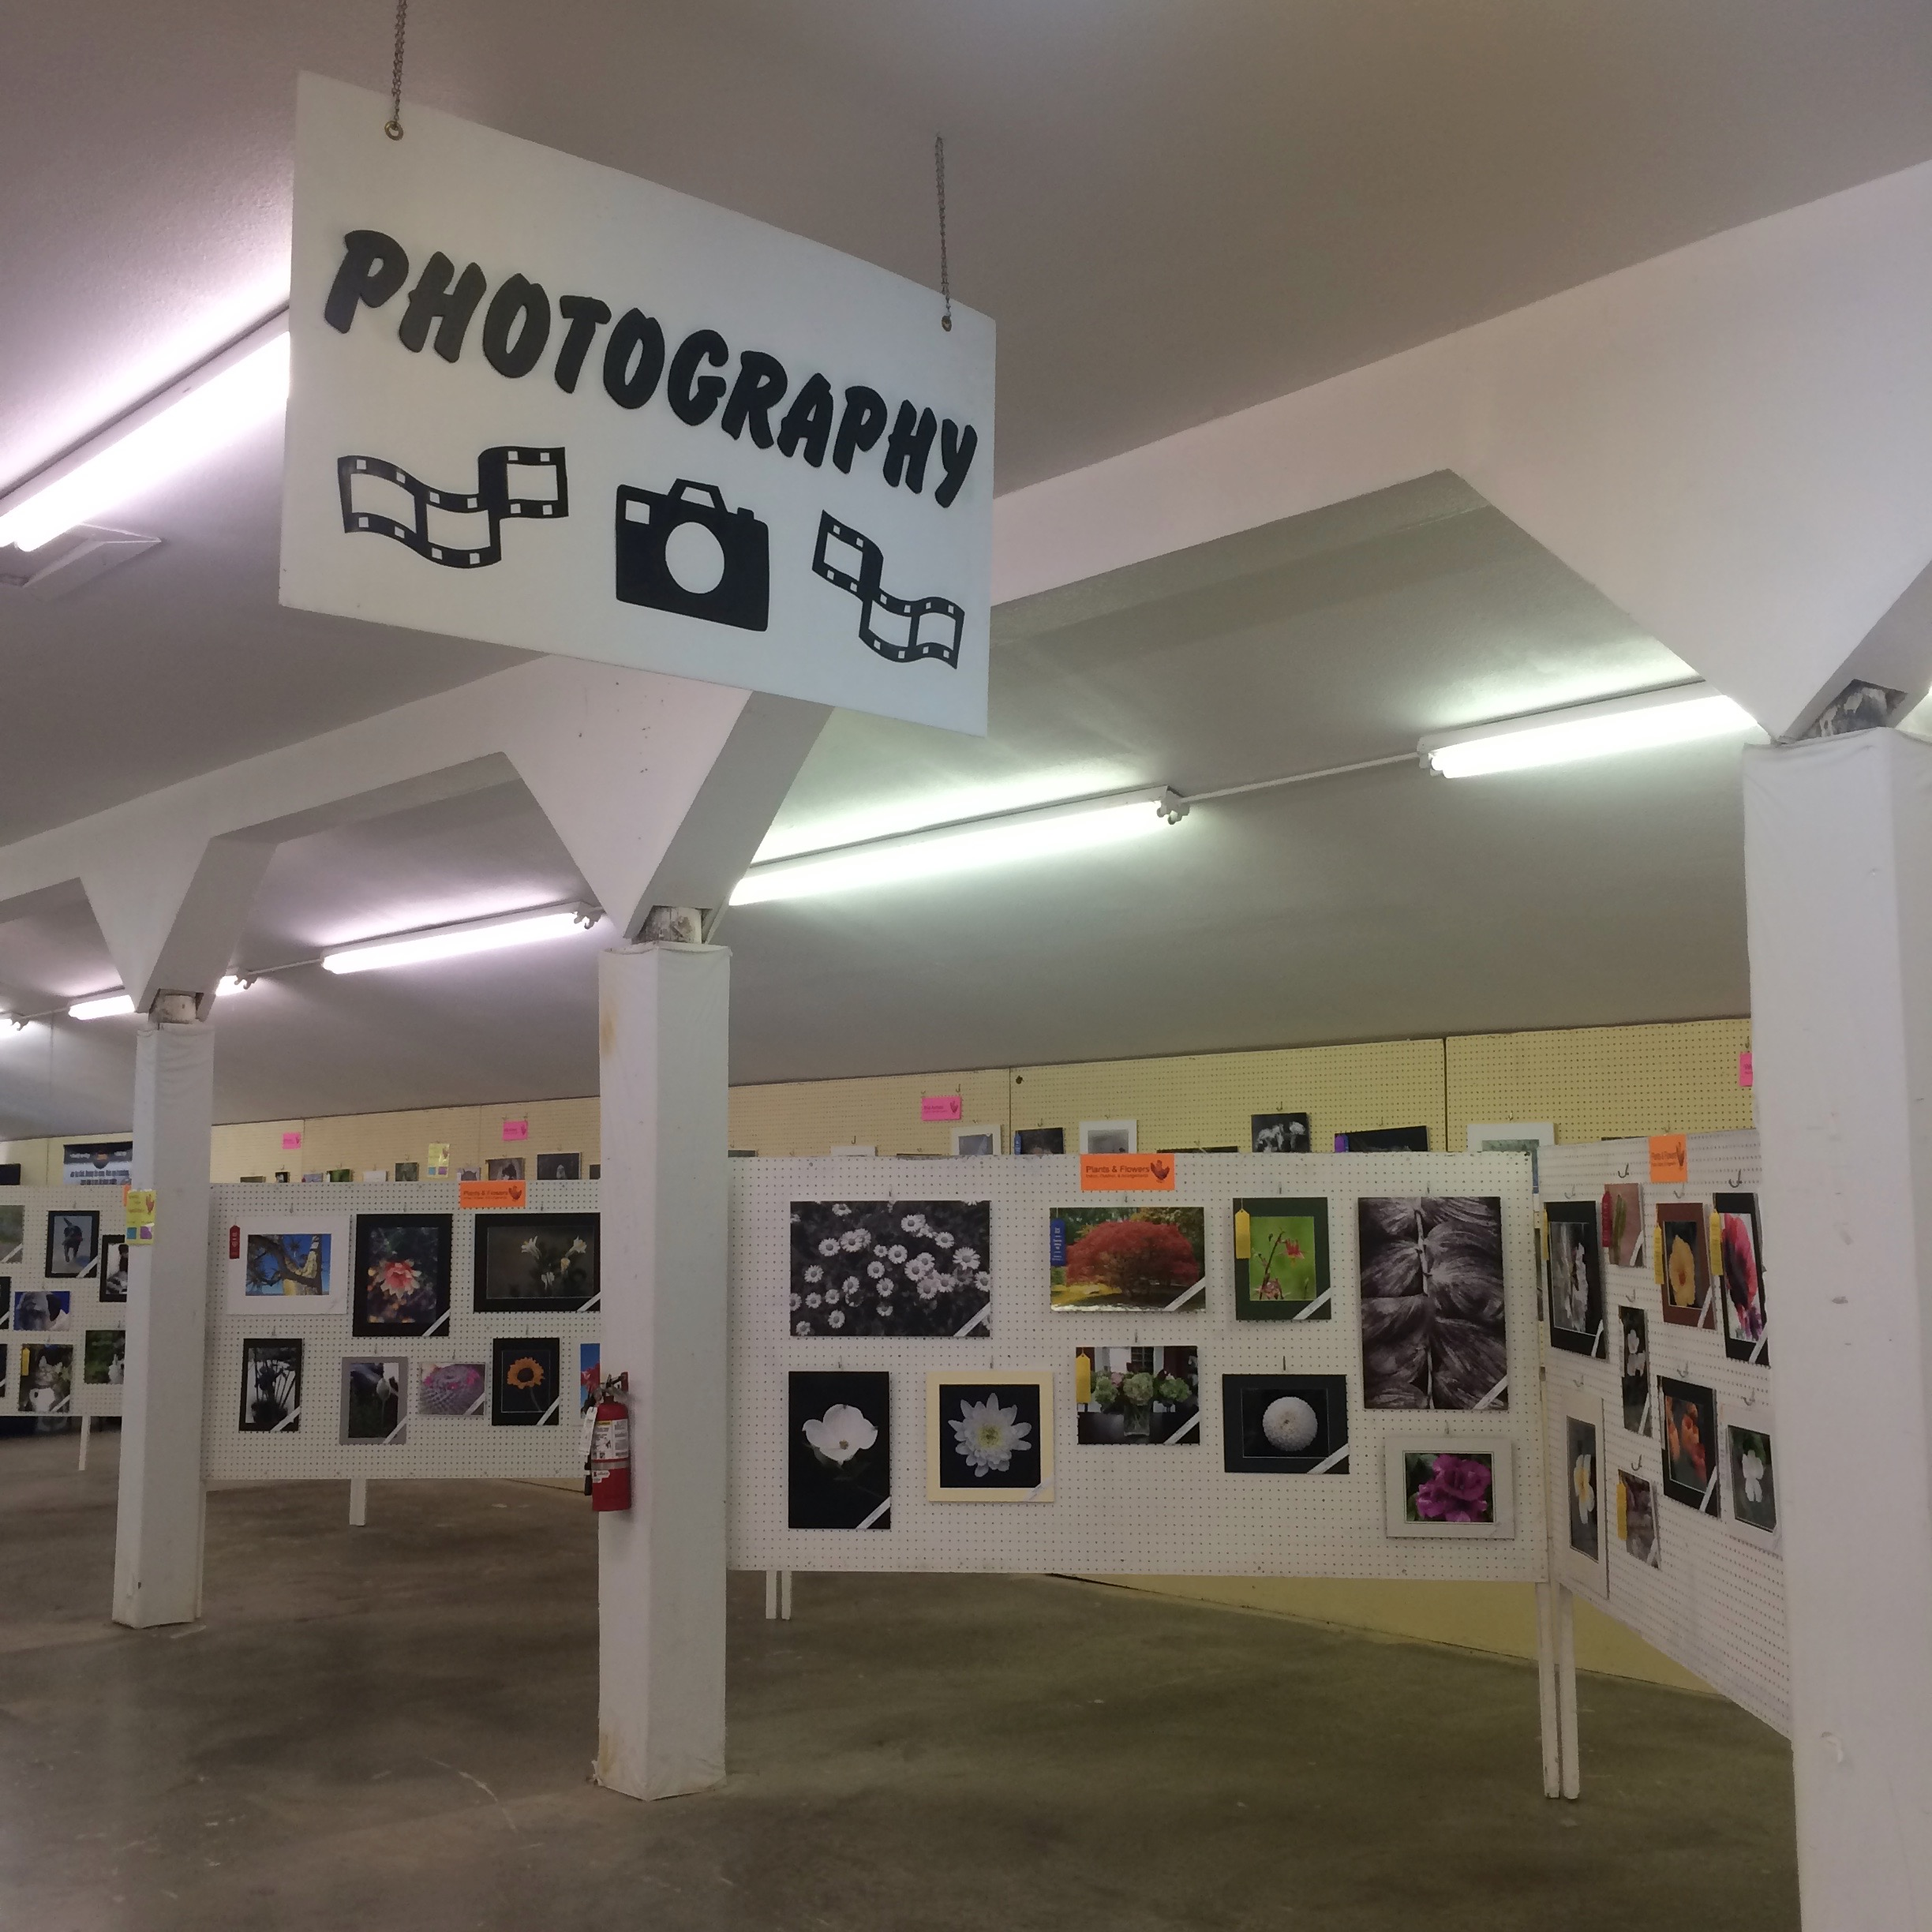 The photography room at the Thurston County Fair, 2018.